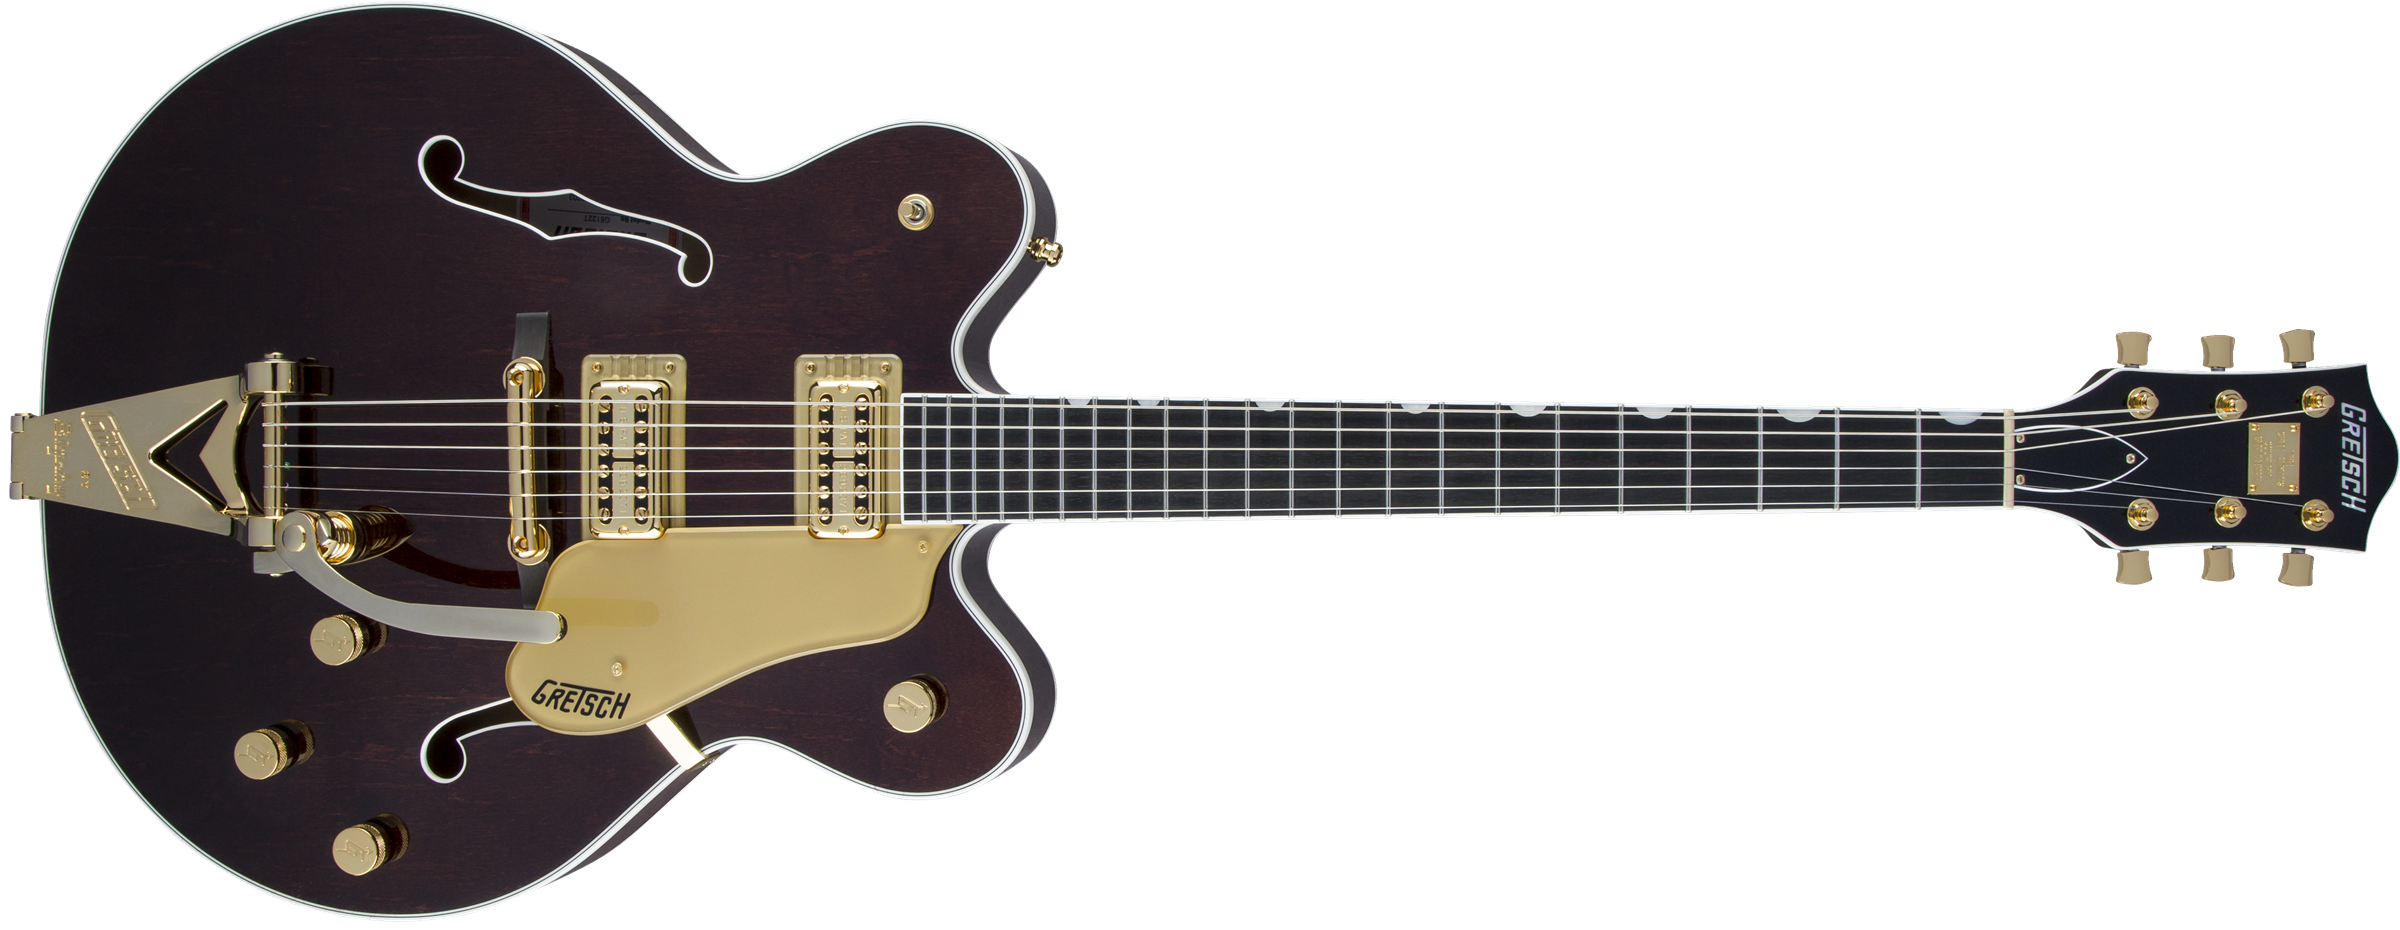 GRETSCH-G6122T-Players-Edition-Country-Gentleman-with-String-Thru-Bigsby-FilterTron-Pickups-Walnut-Stain-sku-571001001